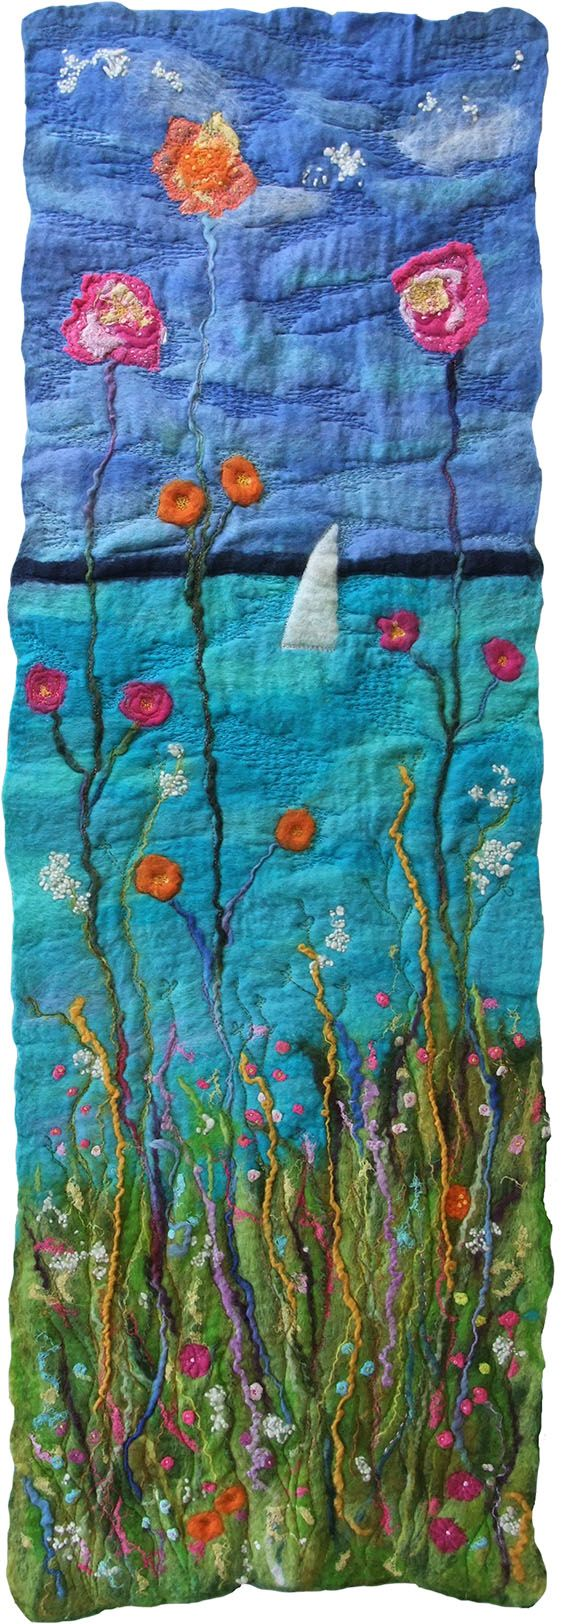 Handmade Felt and Stitch Wall Hanging Flowers Artwork